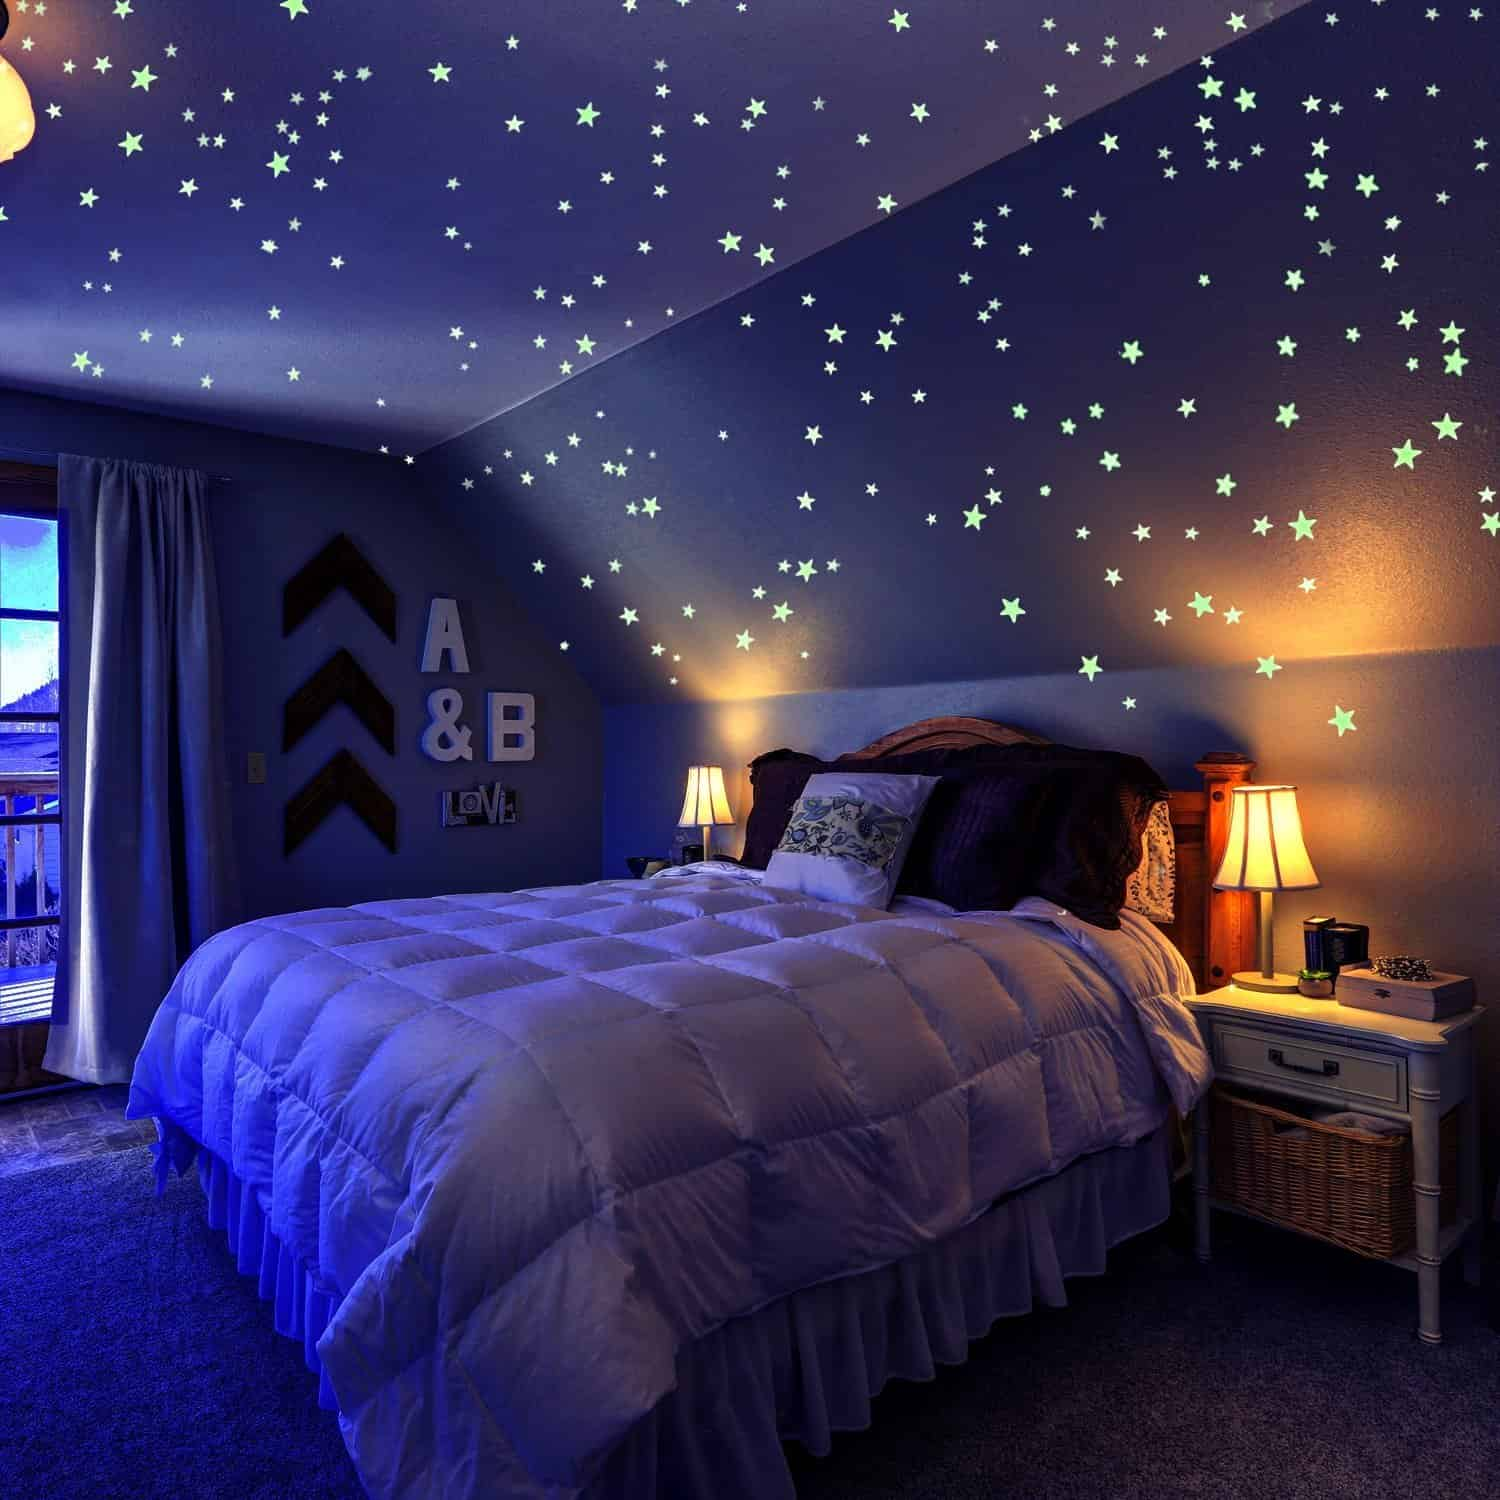 Charming Bedroom Ideas For Teenage Girls on Teenage Bedroom Ideas  id=49173